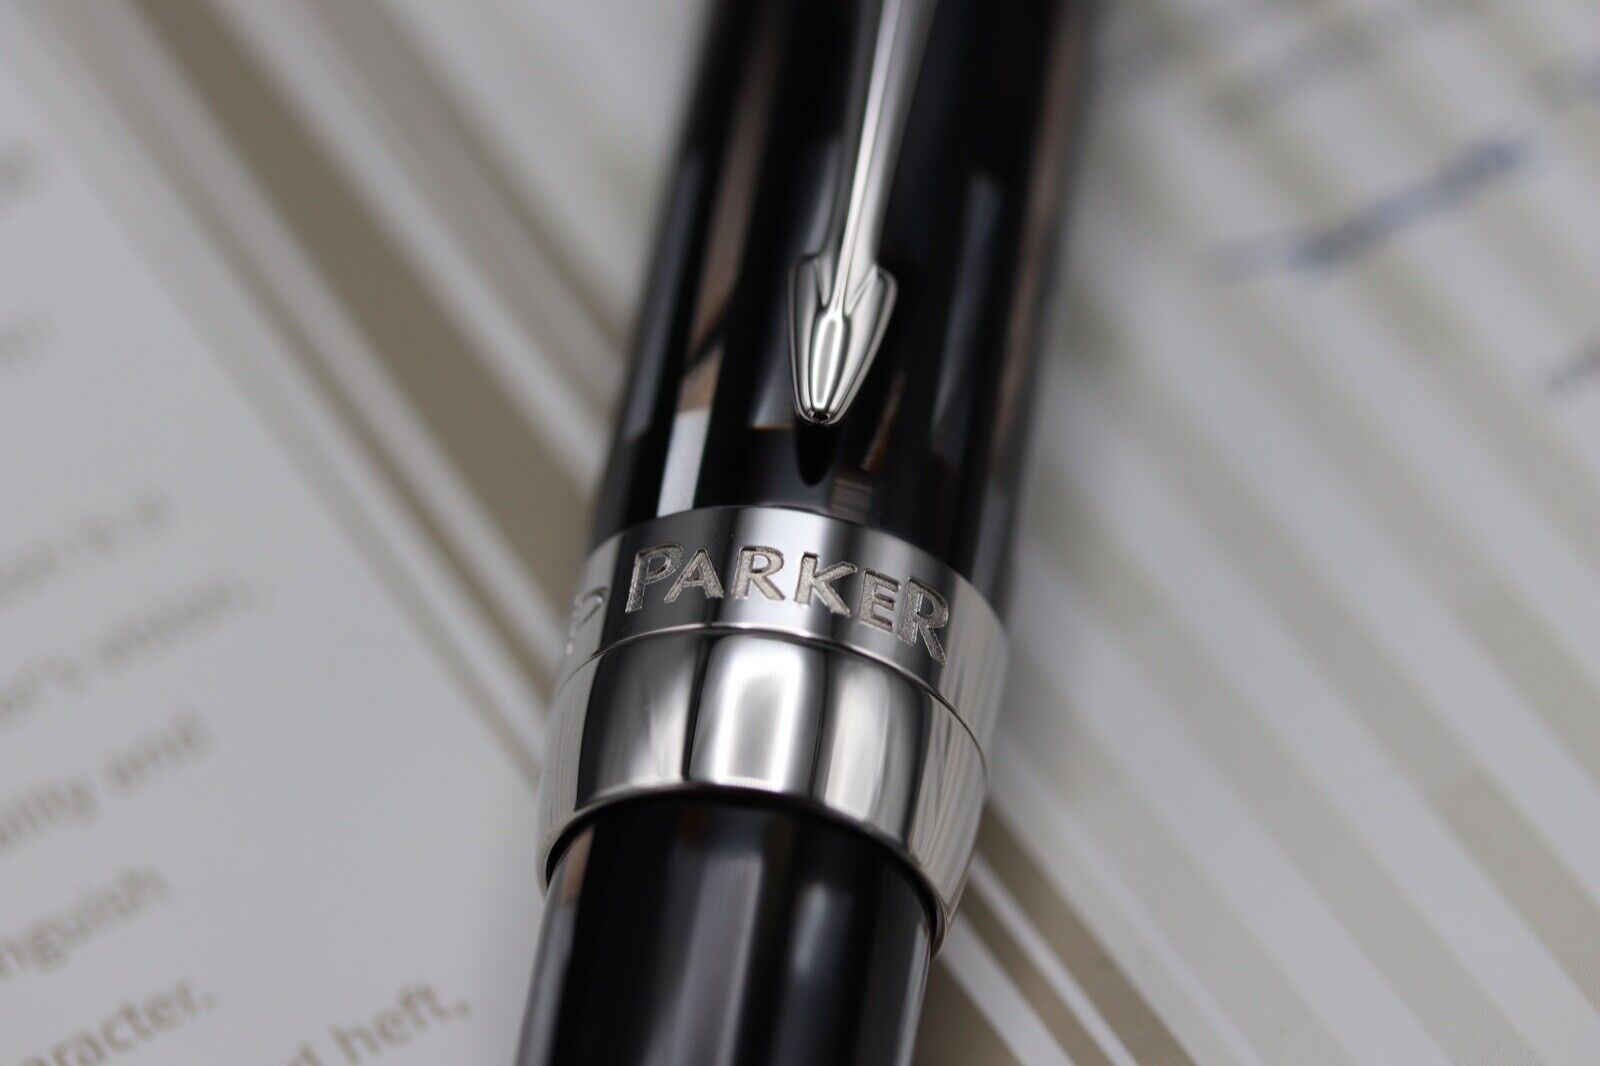 Parker Duofold Senior Brown Limited Edition Fountain Pen - UNUSED 5